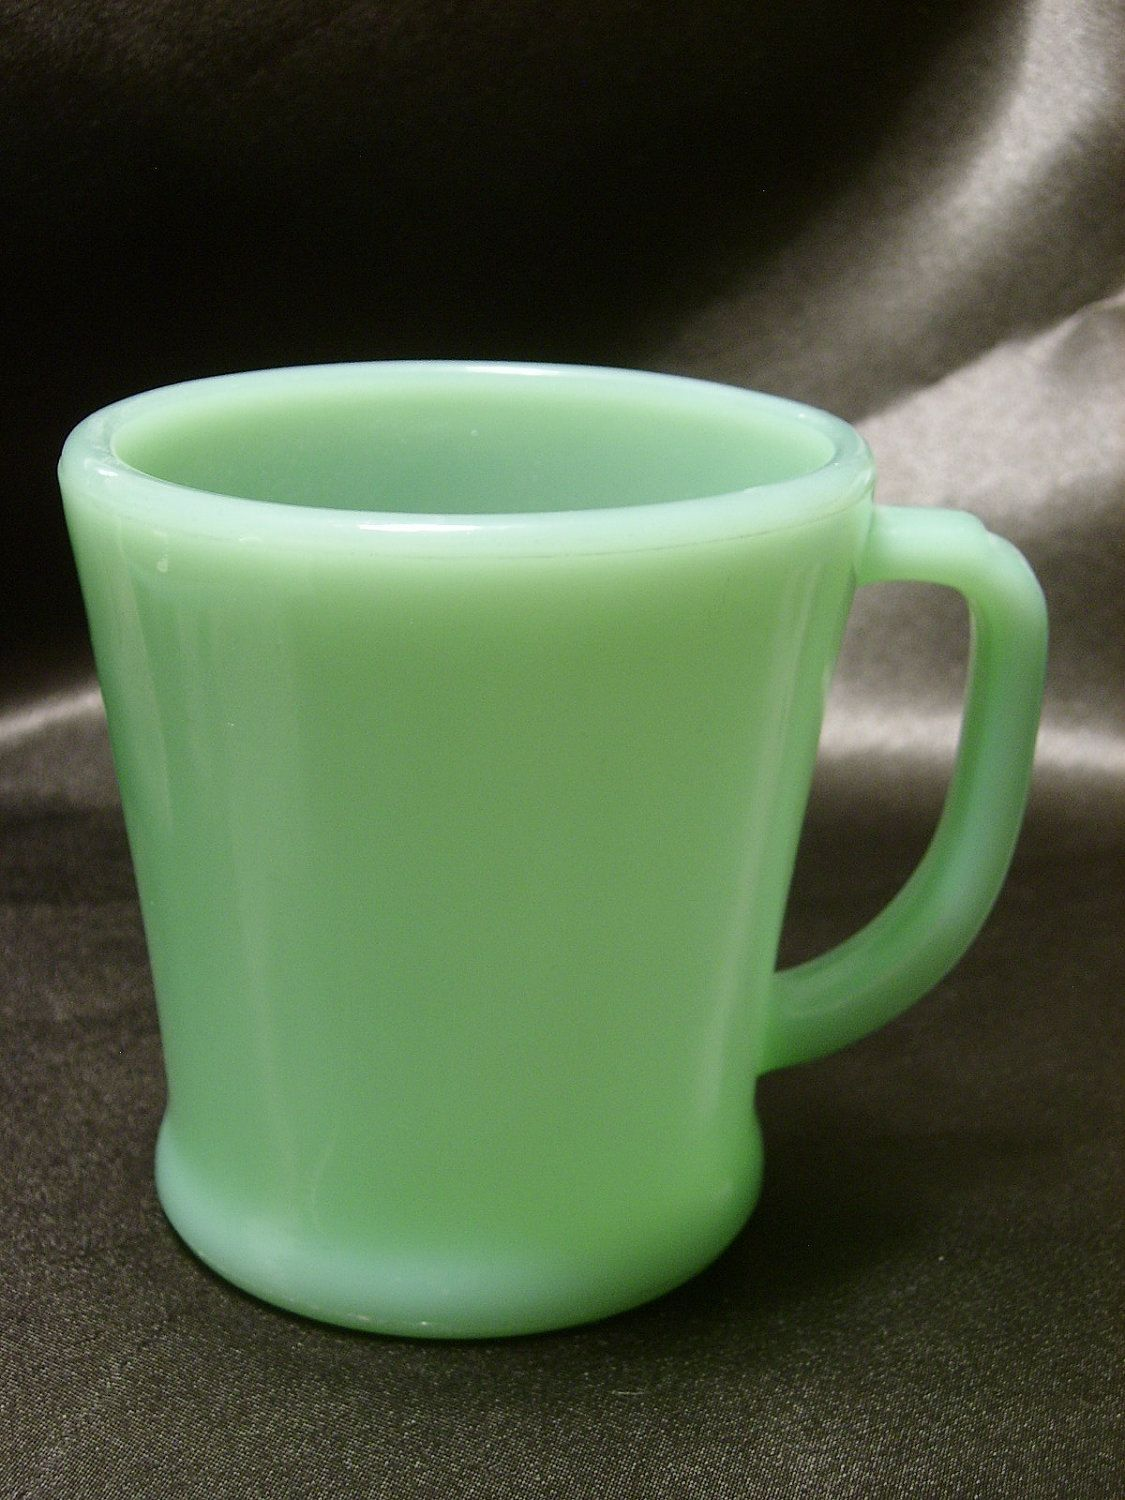 bd9990af864 1950s Fire King Coffee Cup....wish I had this beauty in my mug collection!